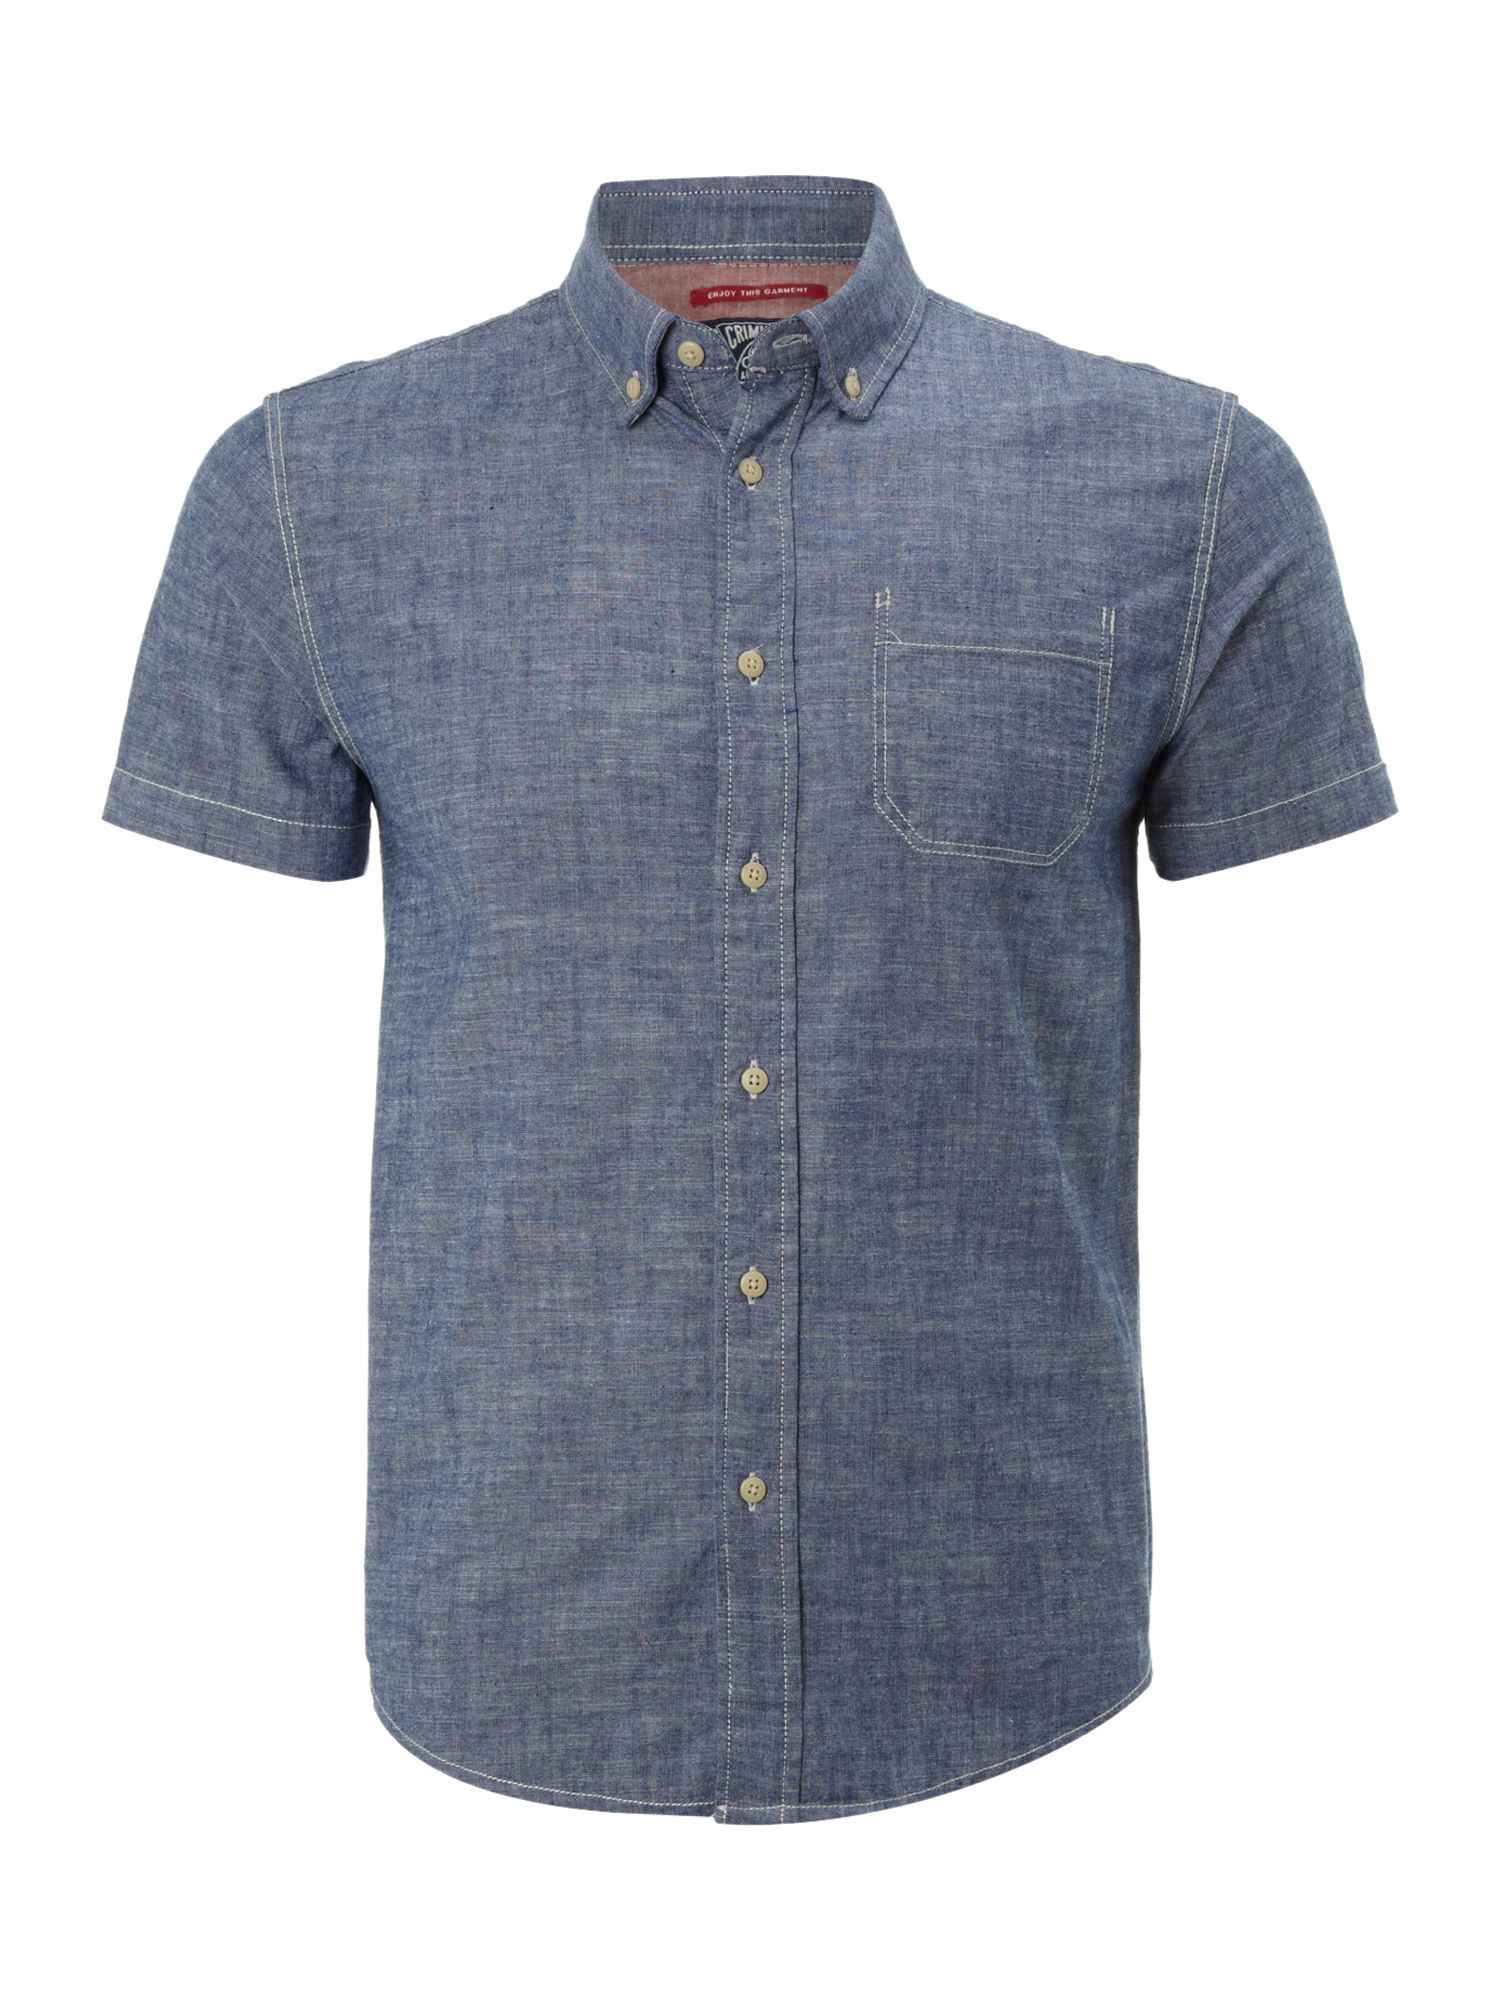 Short sleeved birchwood chambray